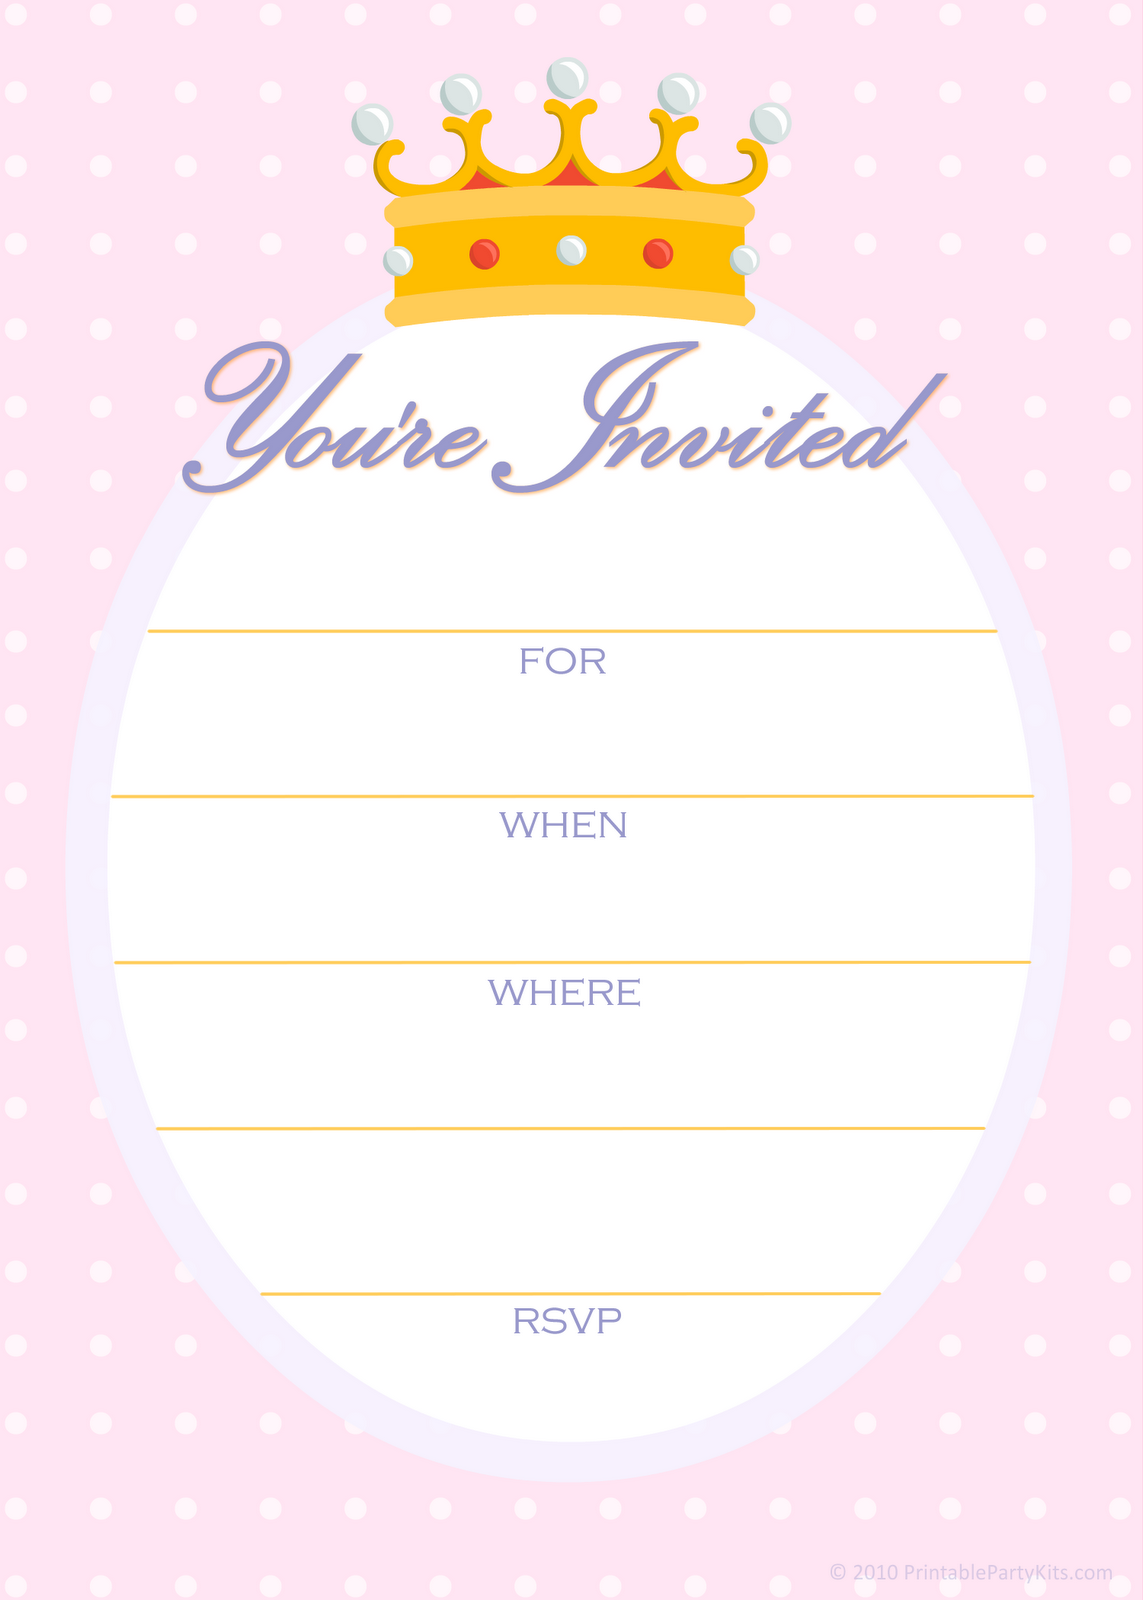 Free Printable Party Invitations Free Invitations For A Princess - Free photo party invitation templates